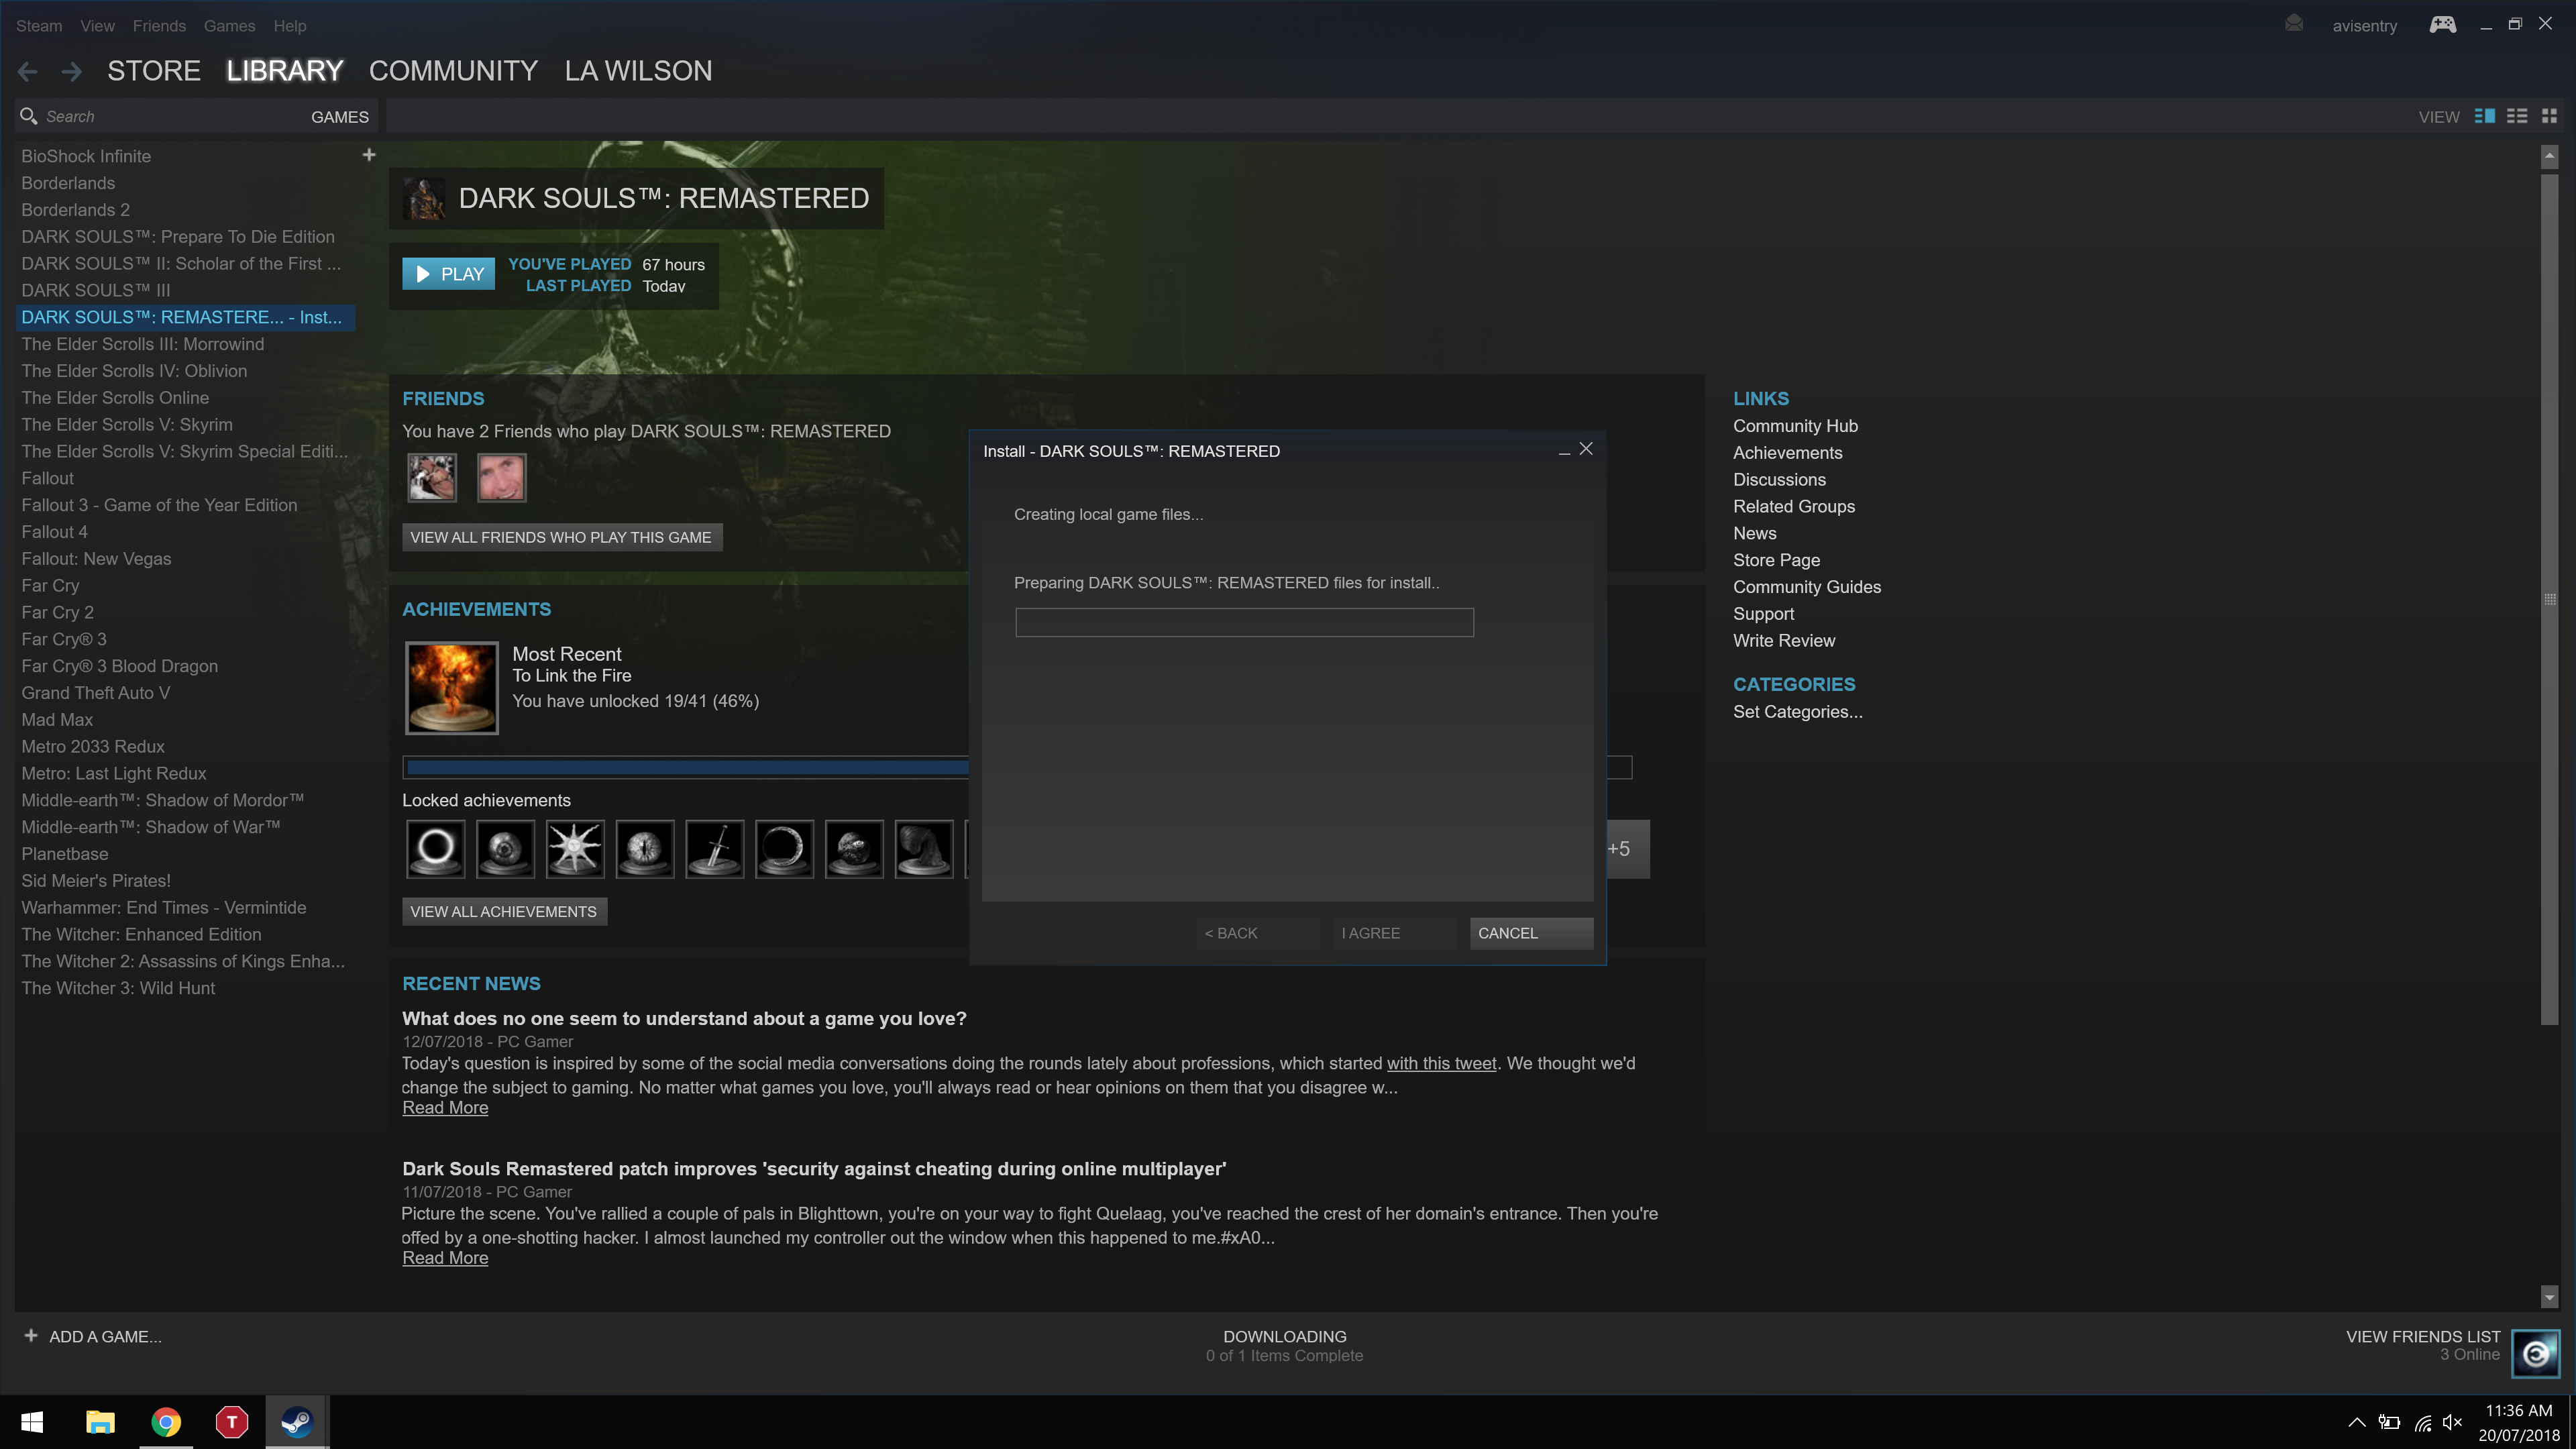 Steam Stuck on 'Creating Local Game Files' - Programs, Apps and